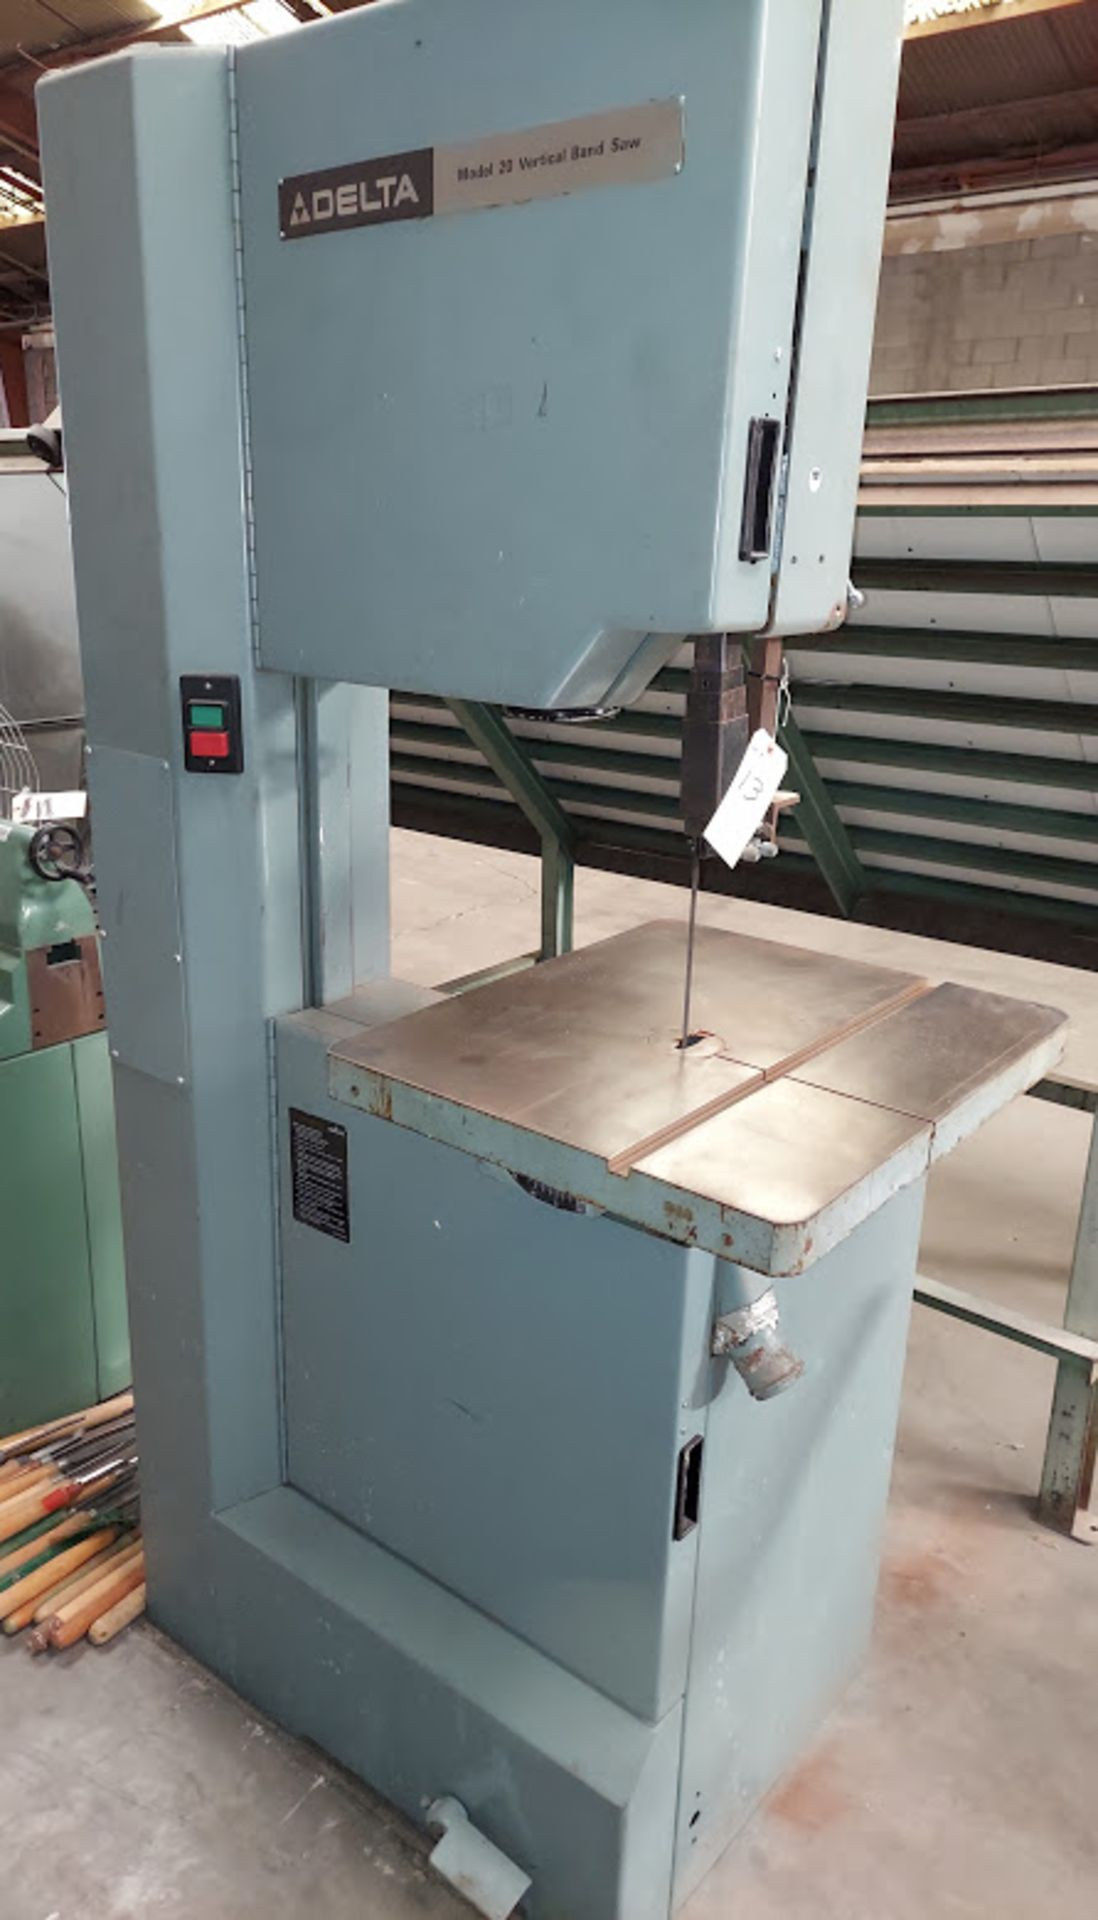 """Delta 20"""" Wood Cutting Bandsaw, Model #28-654, 2 HP 230 Volts 3 Phase, 2 Step Pully - Image 2 of 6"""